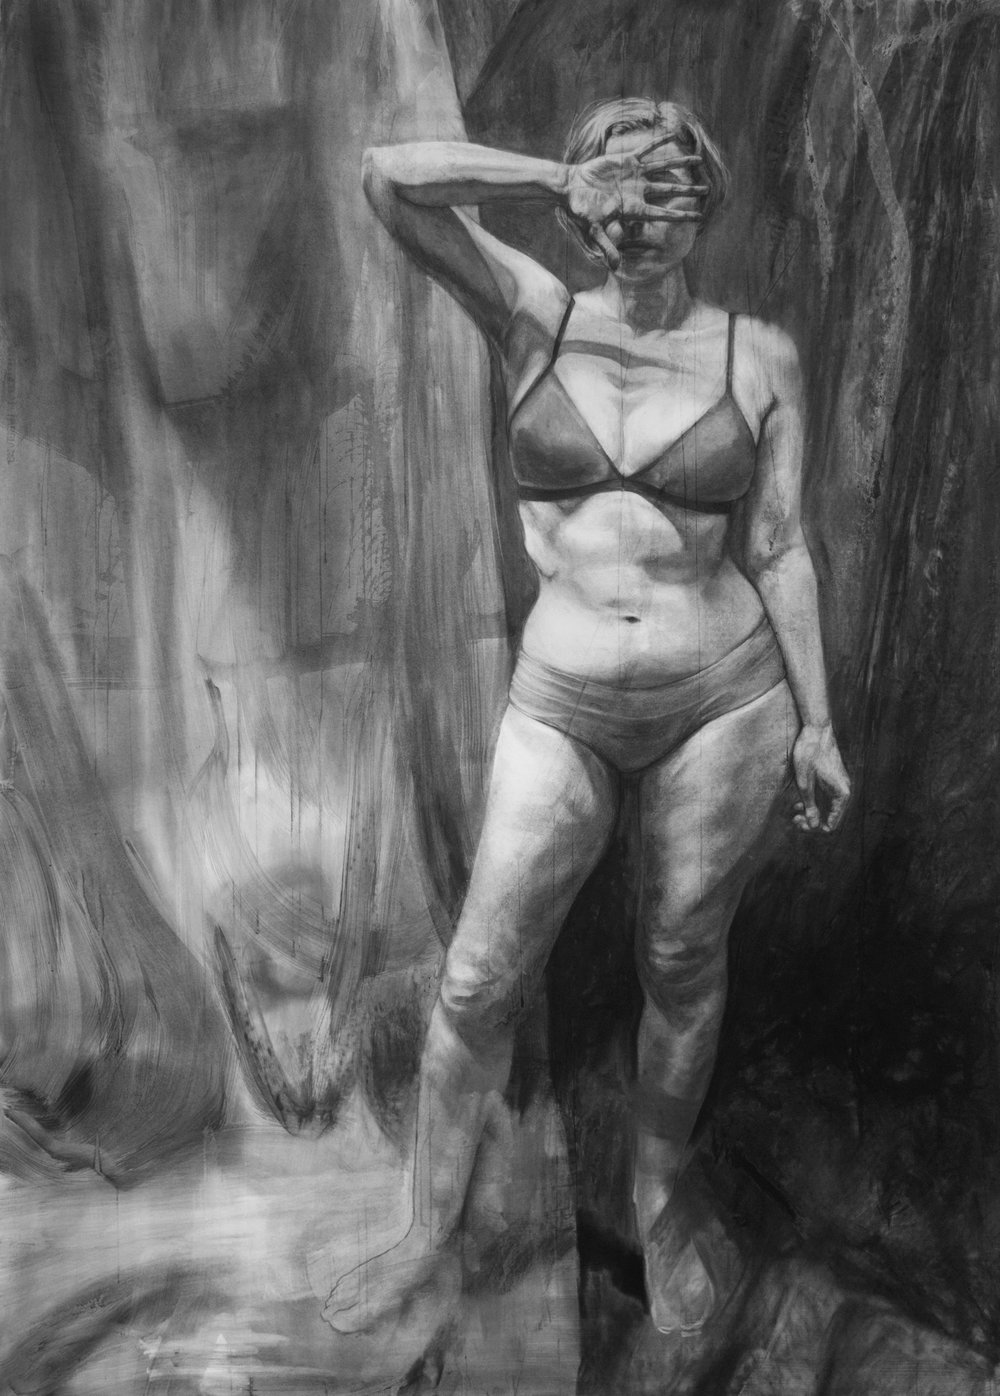 When I Close My Eyes There's Stillness  Charcoal on paper  76x55 inches  2018